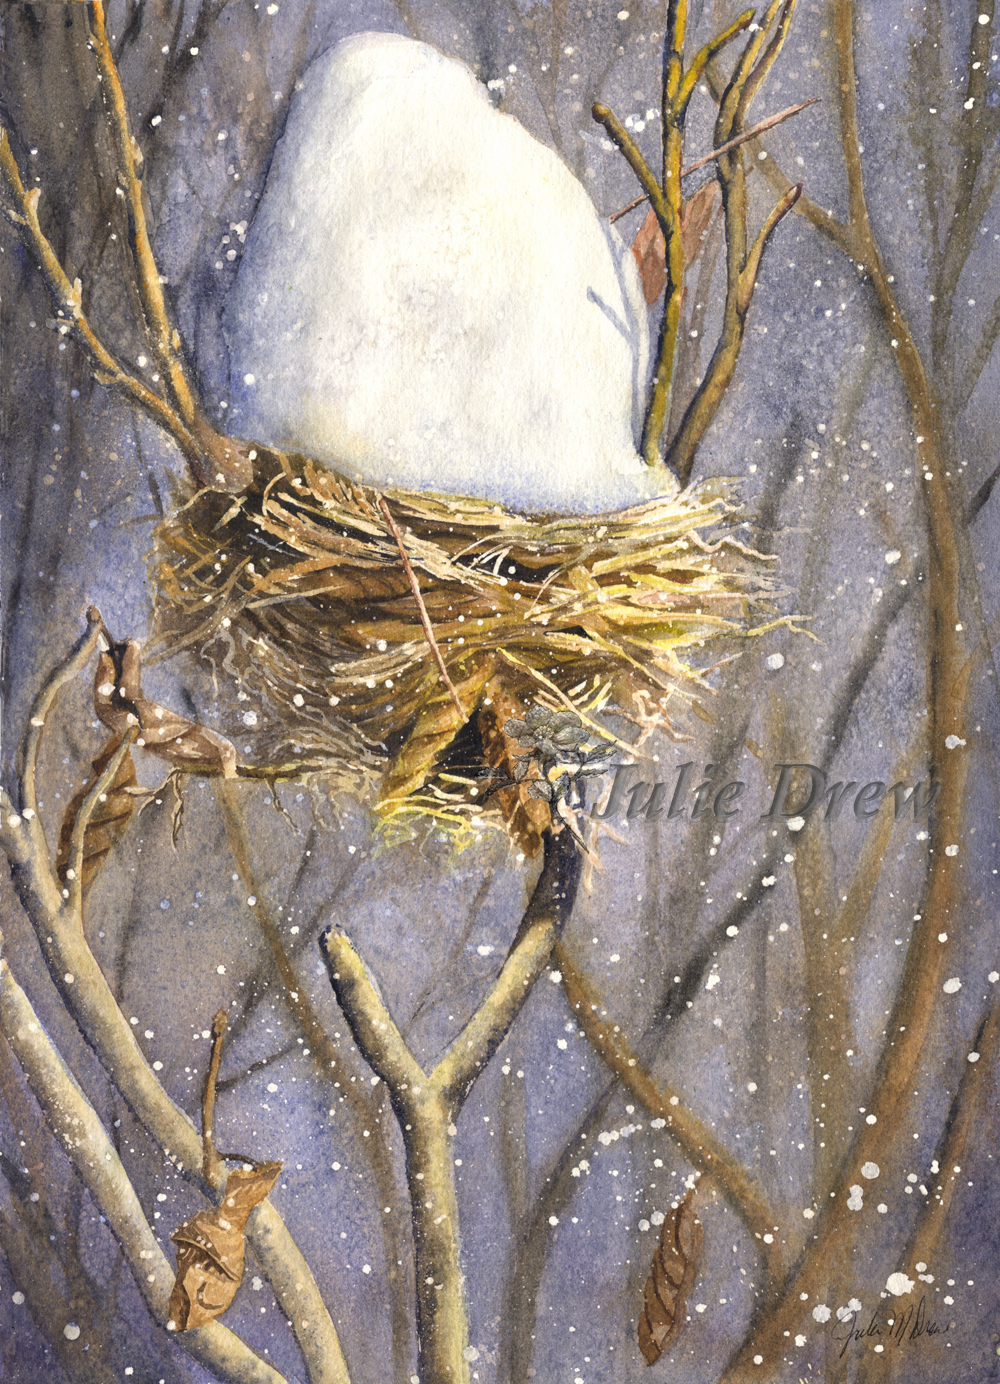 Empty Nest, watercolor by Julie Drew